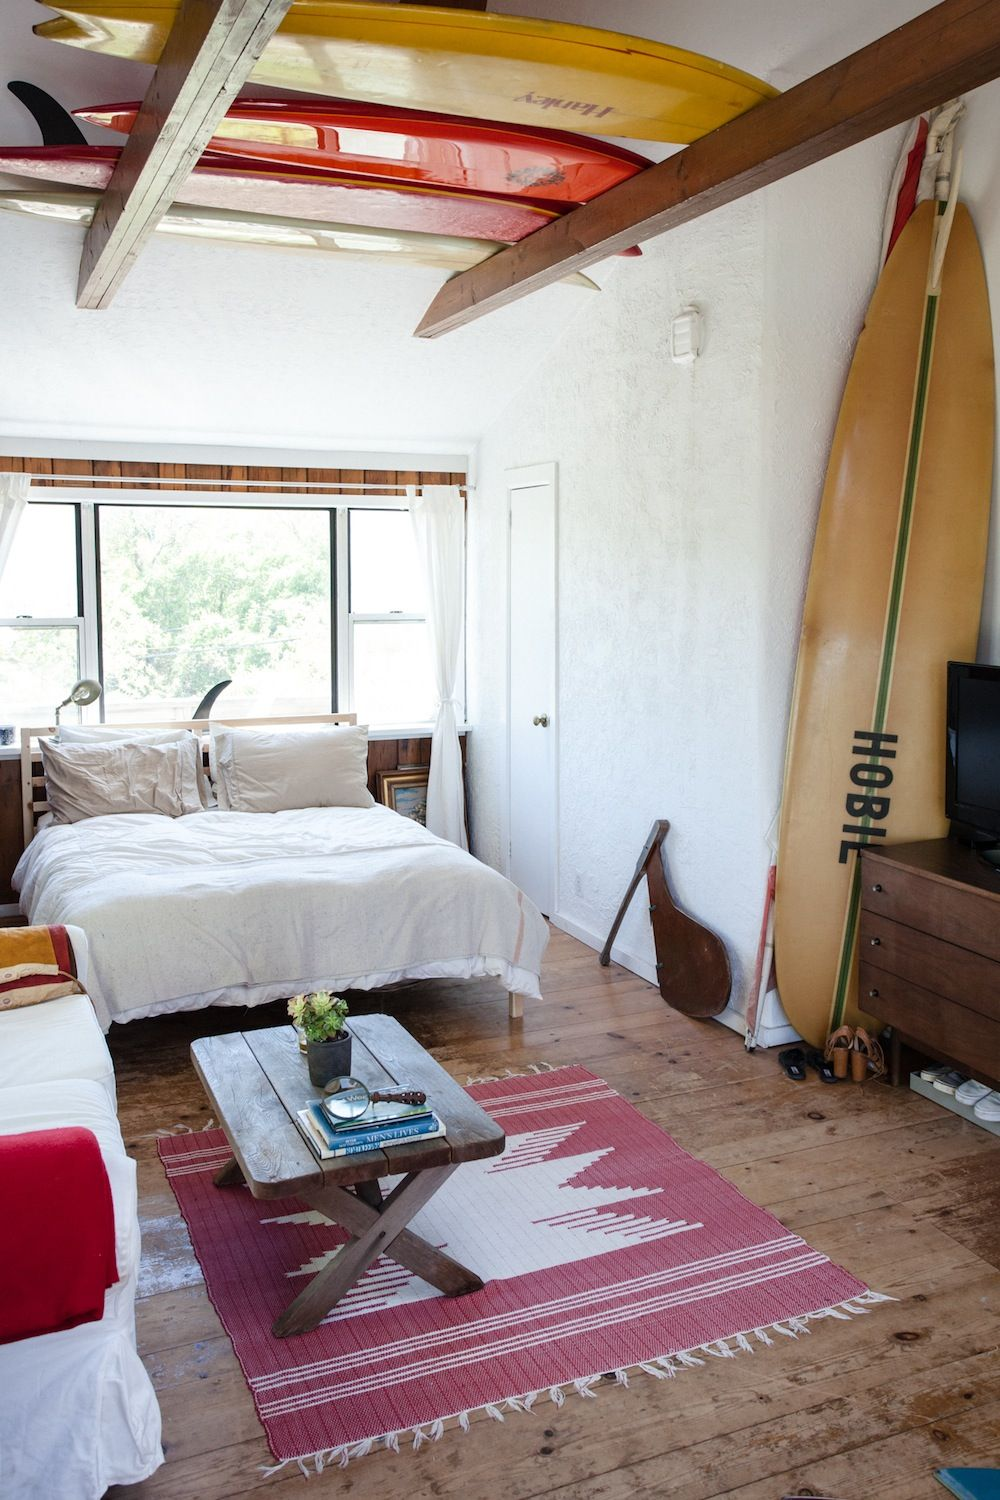 Urban Outfitters - Blog - About A Space  Mikey DeTemple s Beach Bungalow f7fe275e8b8